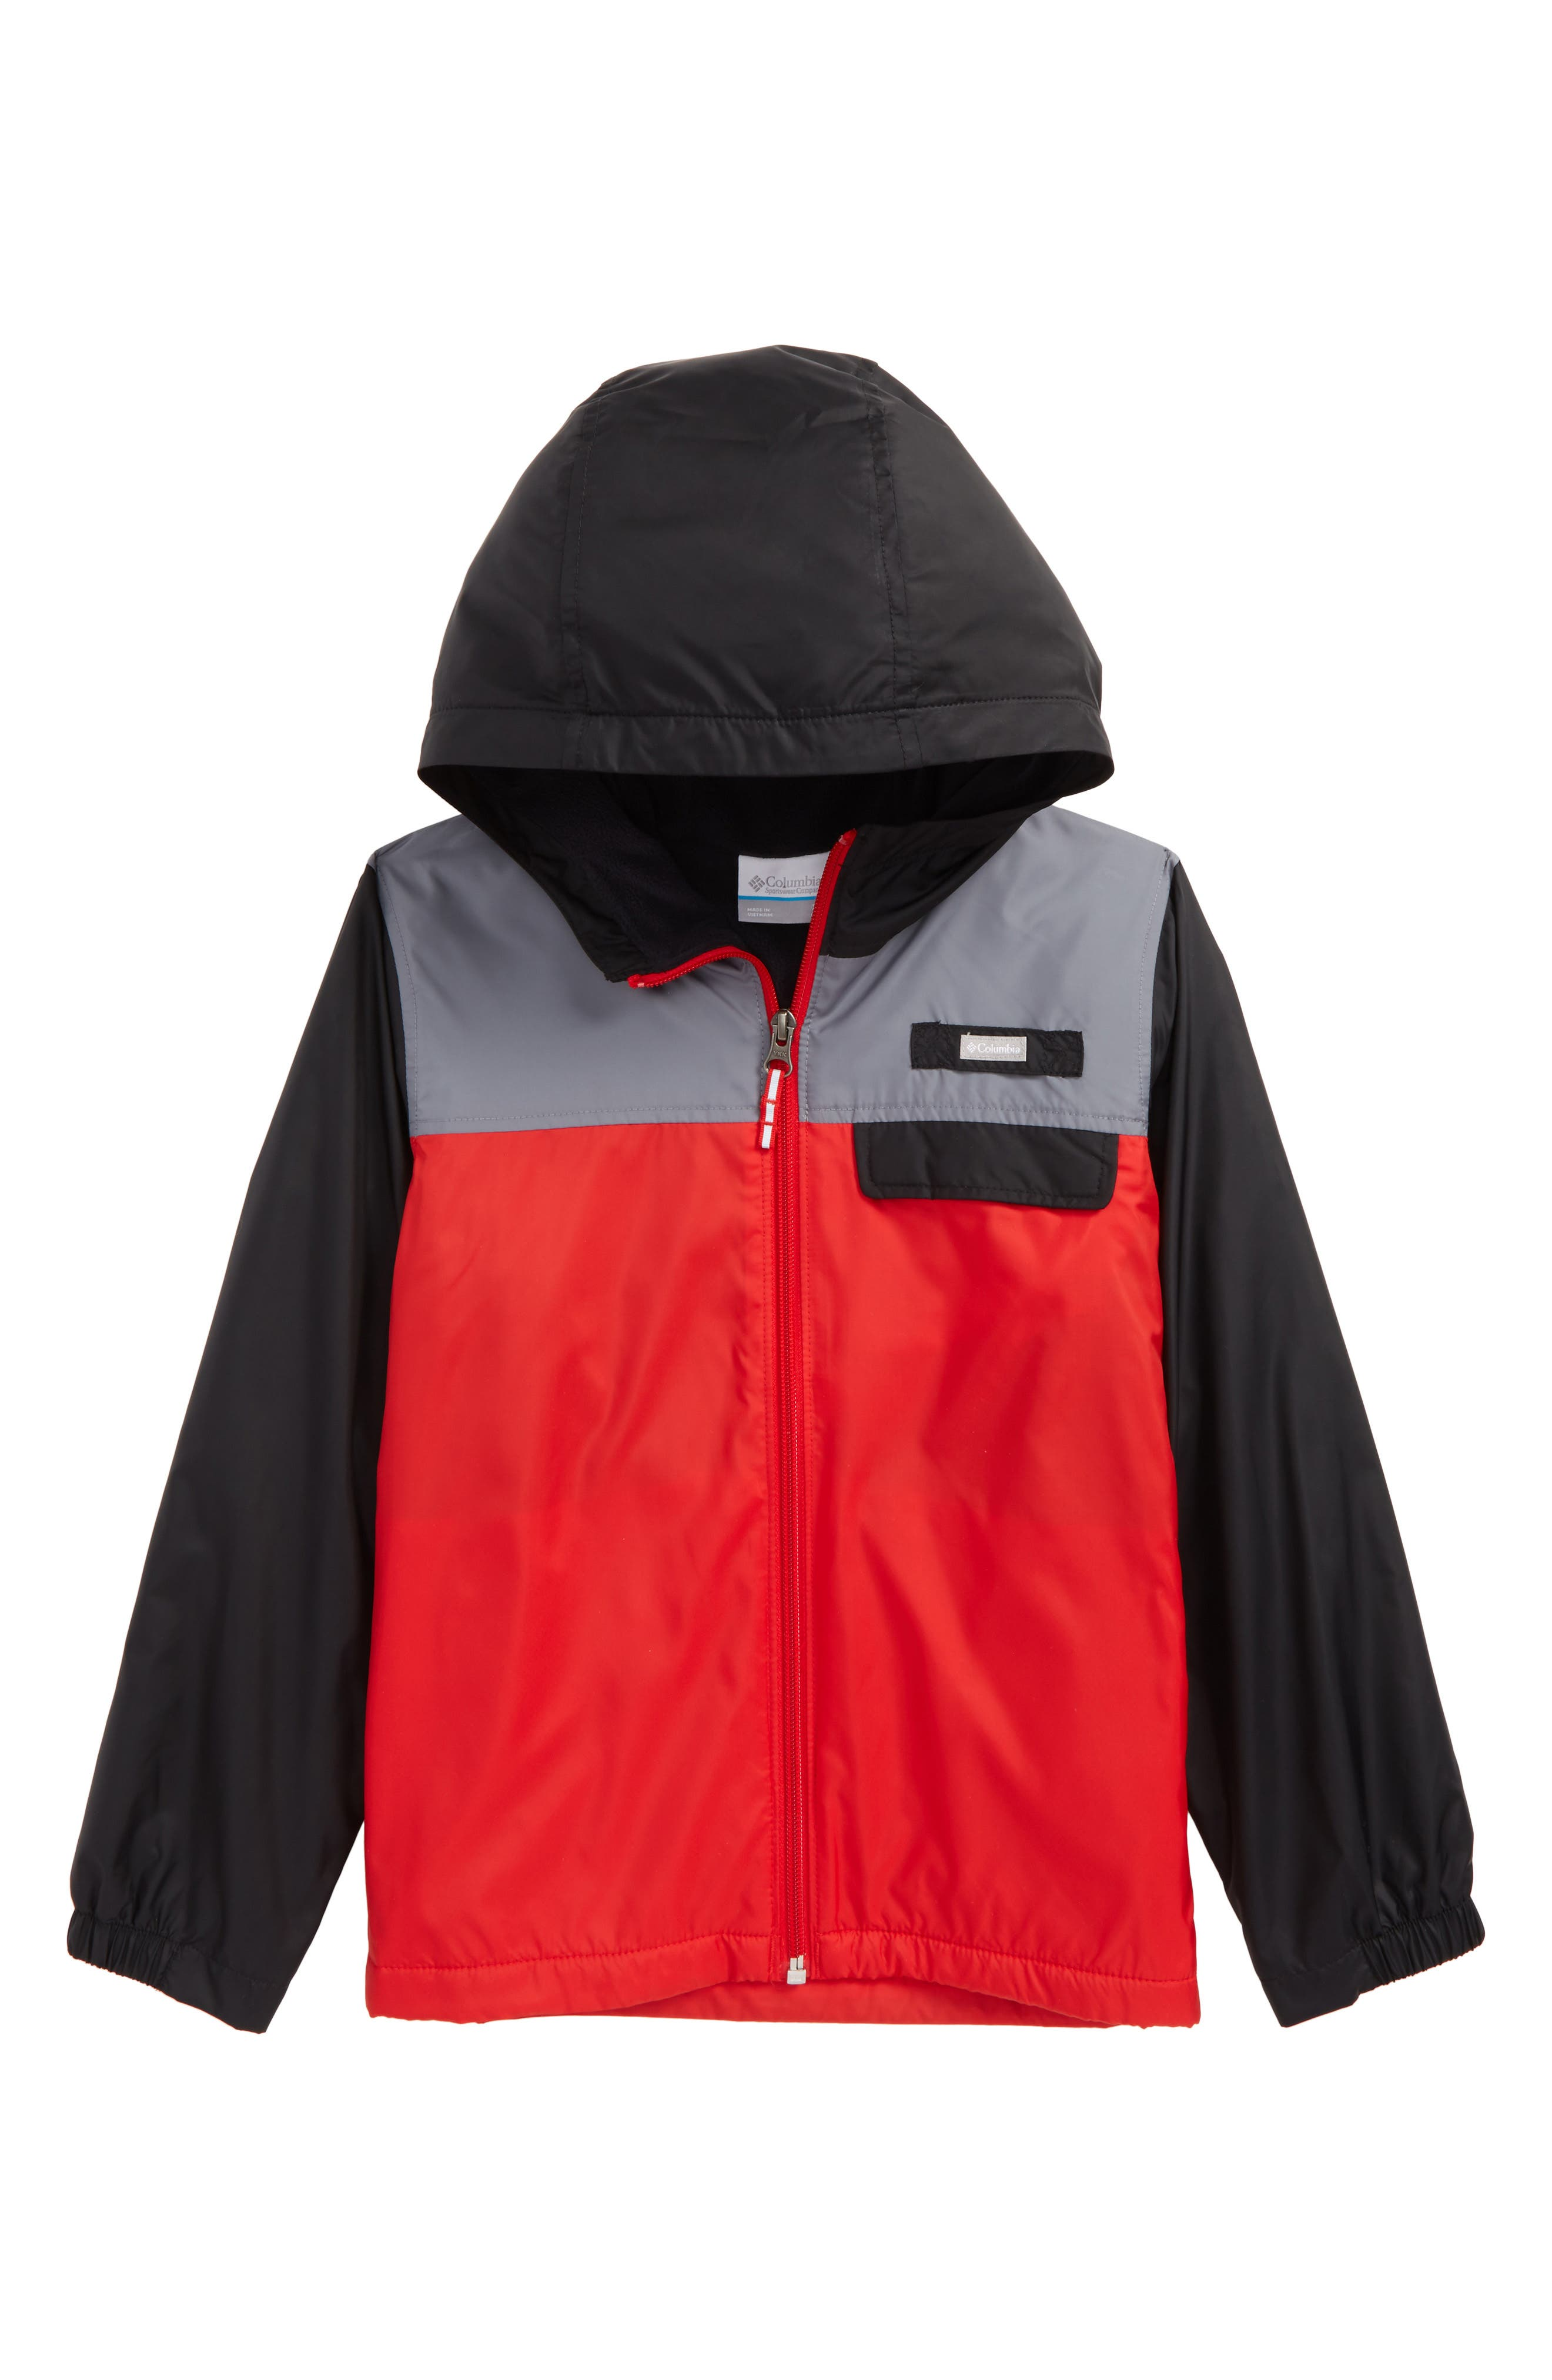 Mountain Side Water Resistant Windbreaker Jacket,                             Main thumbnail 1, color,                             Bright Red/ Grey Ash/Black